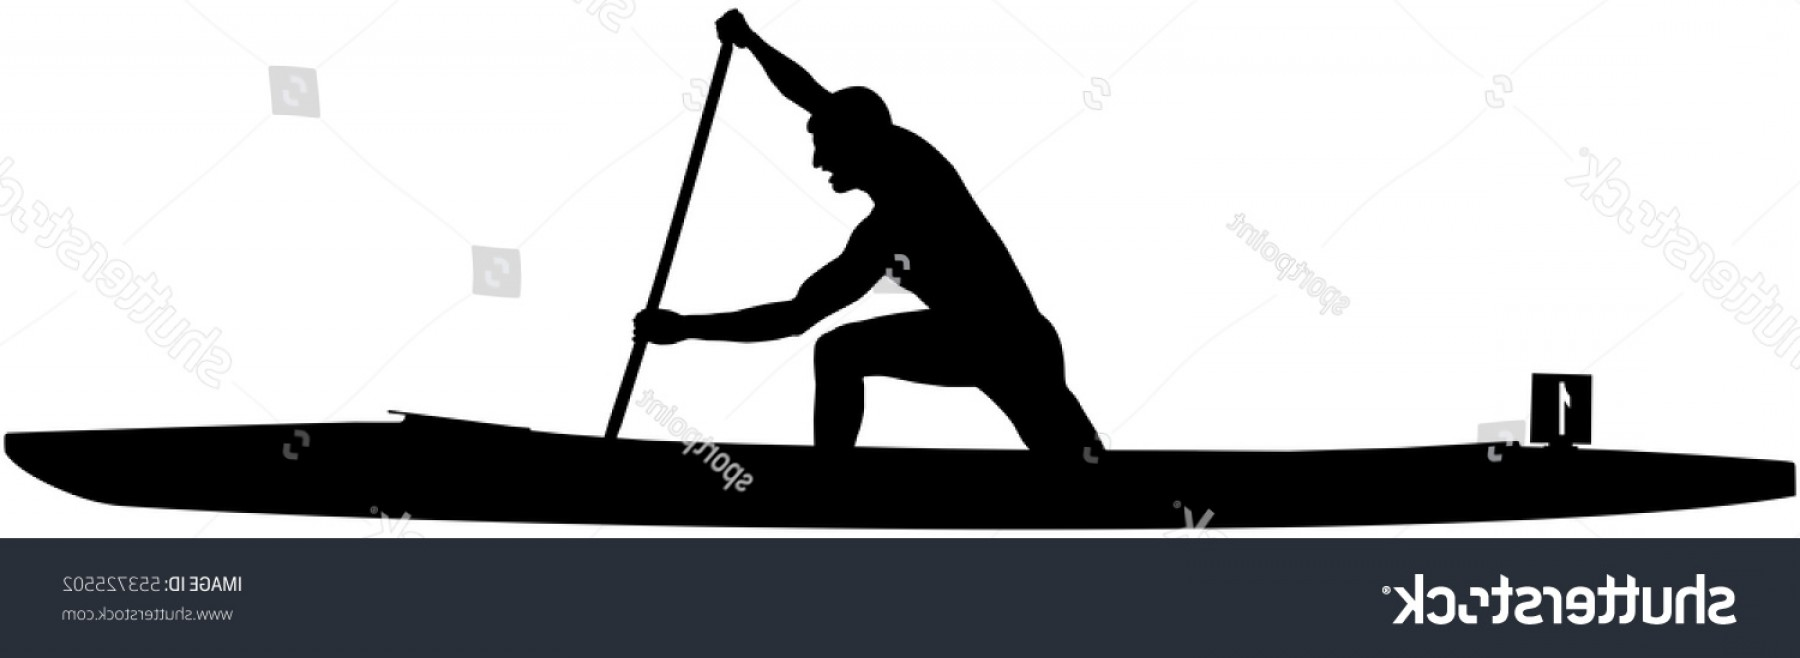 Stand Up Paddle Boarder Vector: Black Silhouette Athlete Rower Sports Canoe